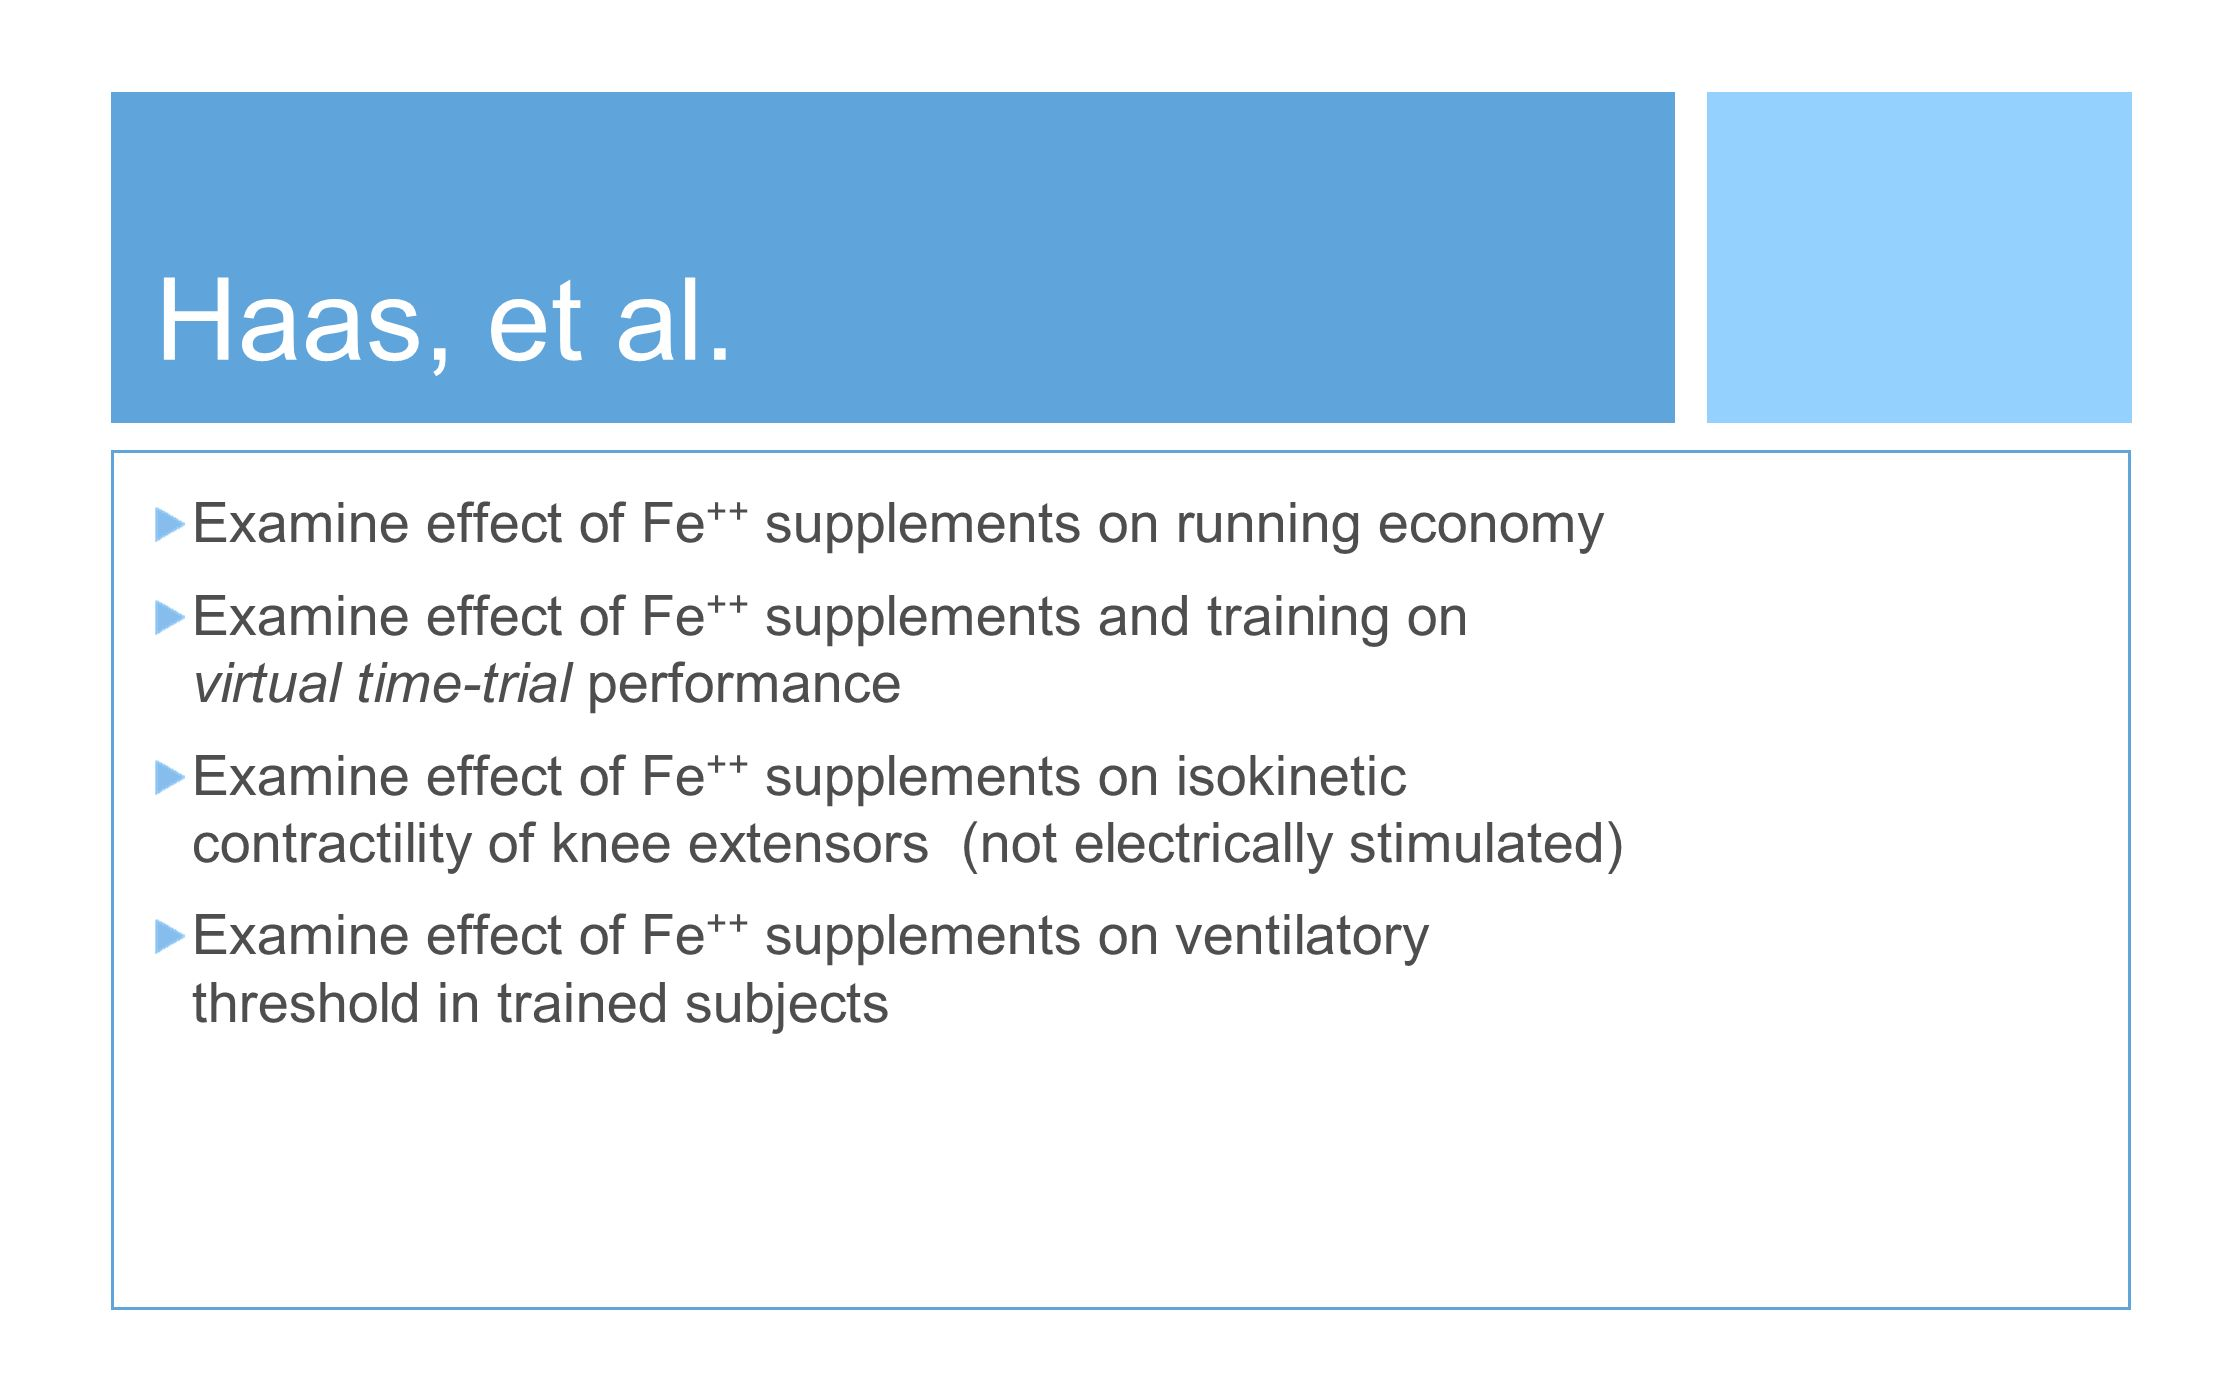 Haas, et al. Examine effect of Fe++ supplements on running economy